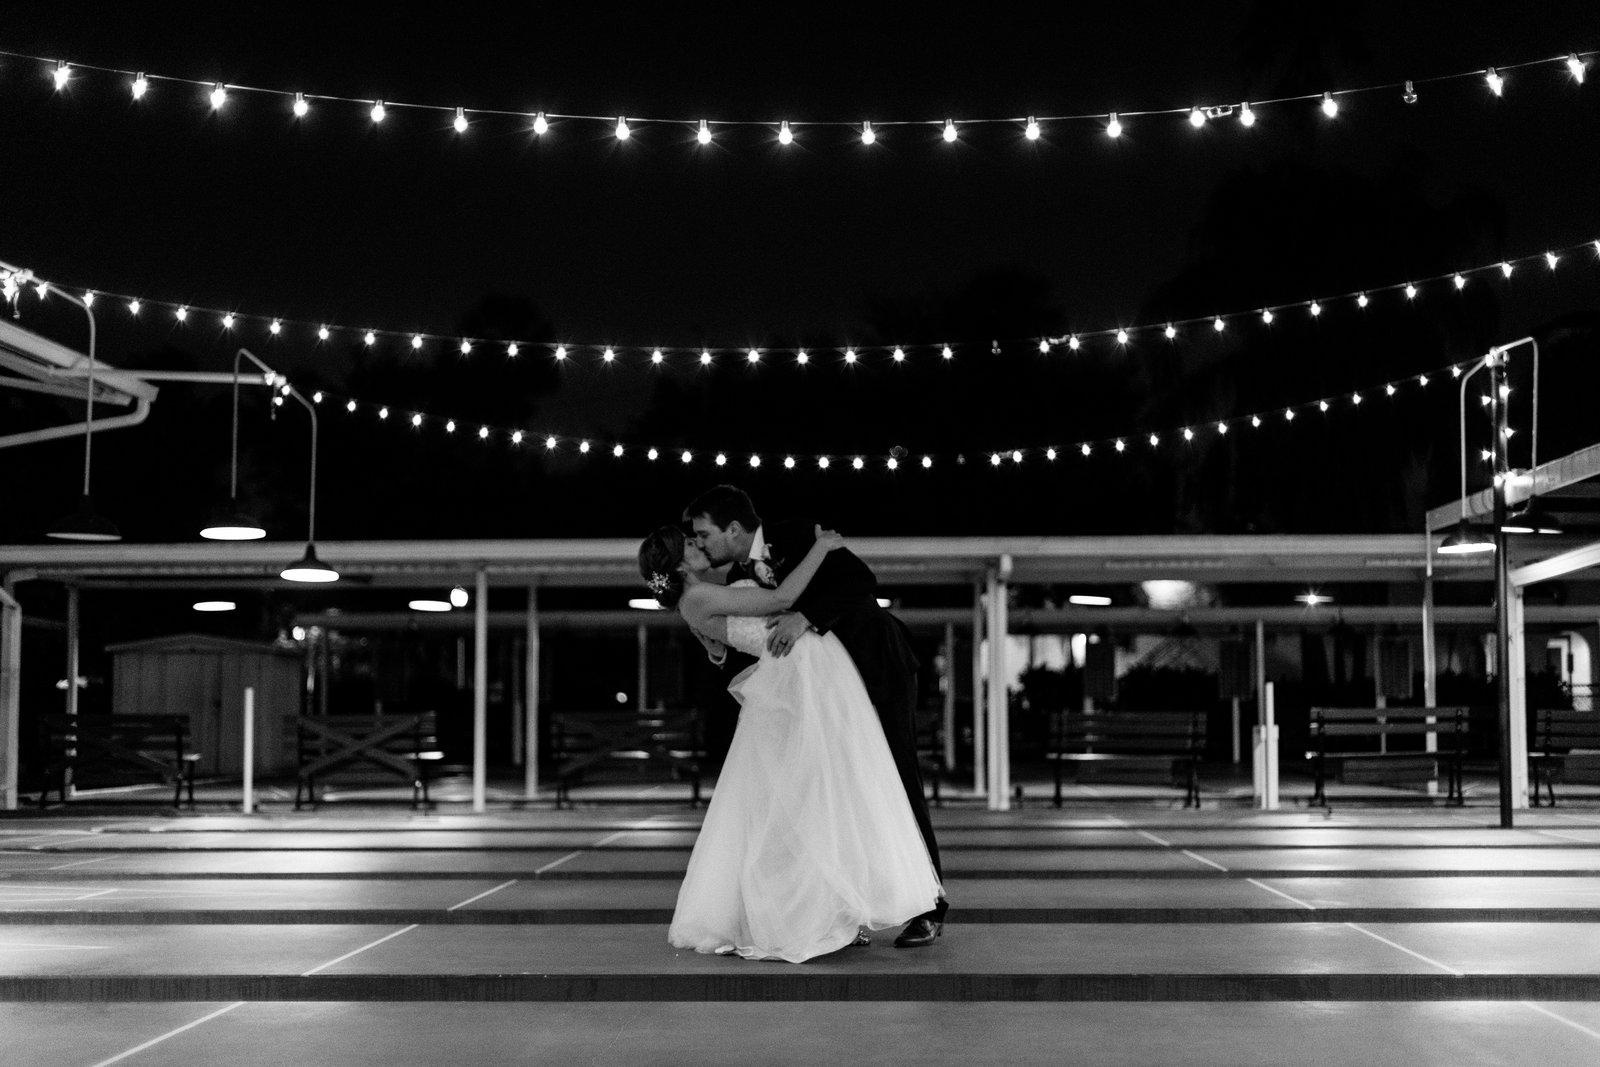 Destination Wedding Photographer Jess Collins Photography at Downtown St. Petersburg Wedding Venue the St. Petersburg Shuffleboard Club  with Orlando Wedding Photography